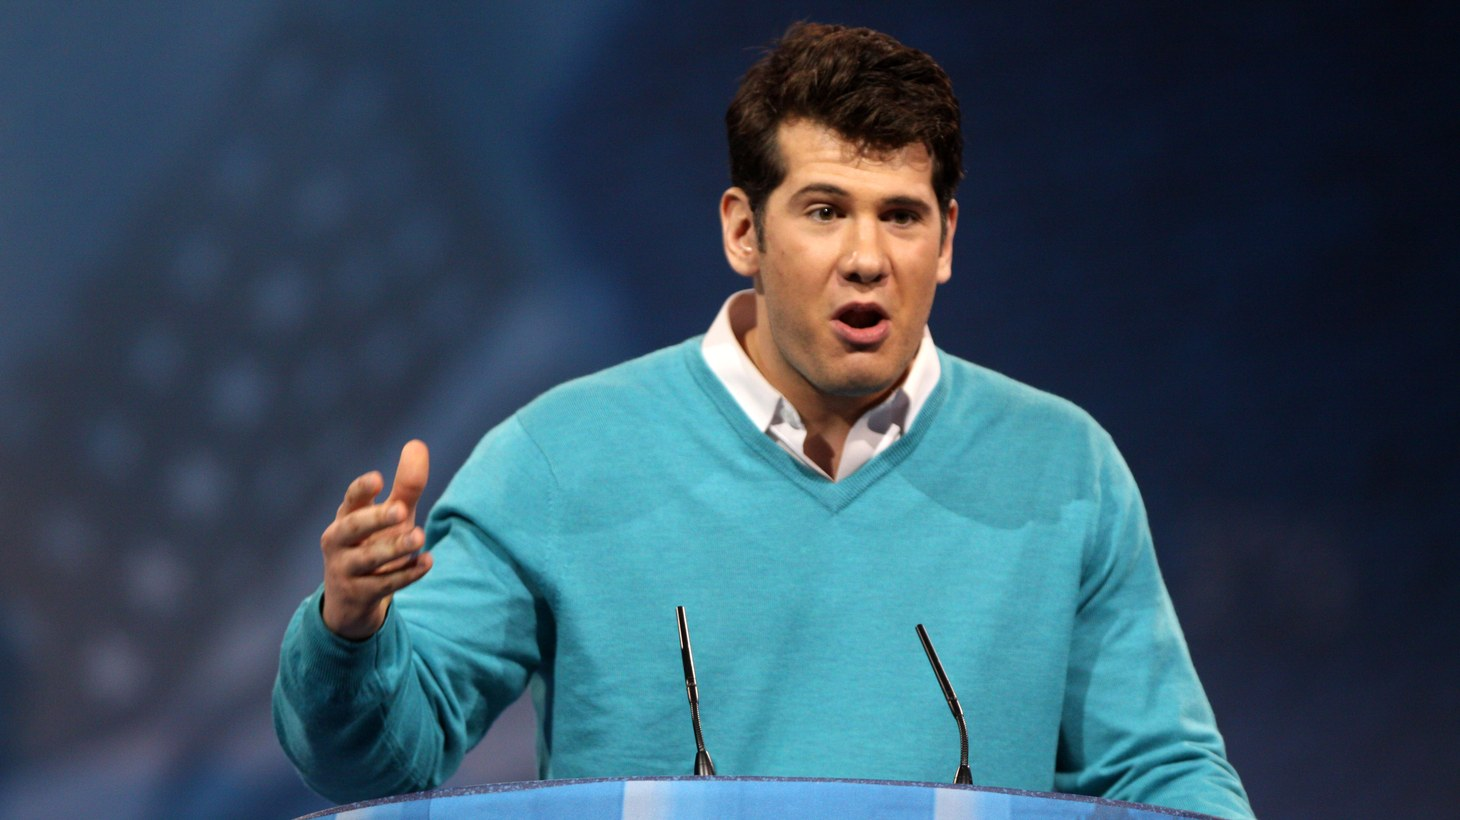 Steven Crowder speaking at the 2013 Conservative Political Action Conference (CPAC) in National Harbor, Maryland.